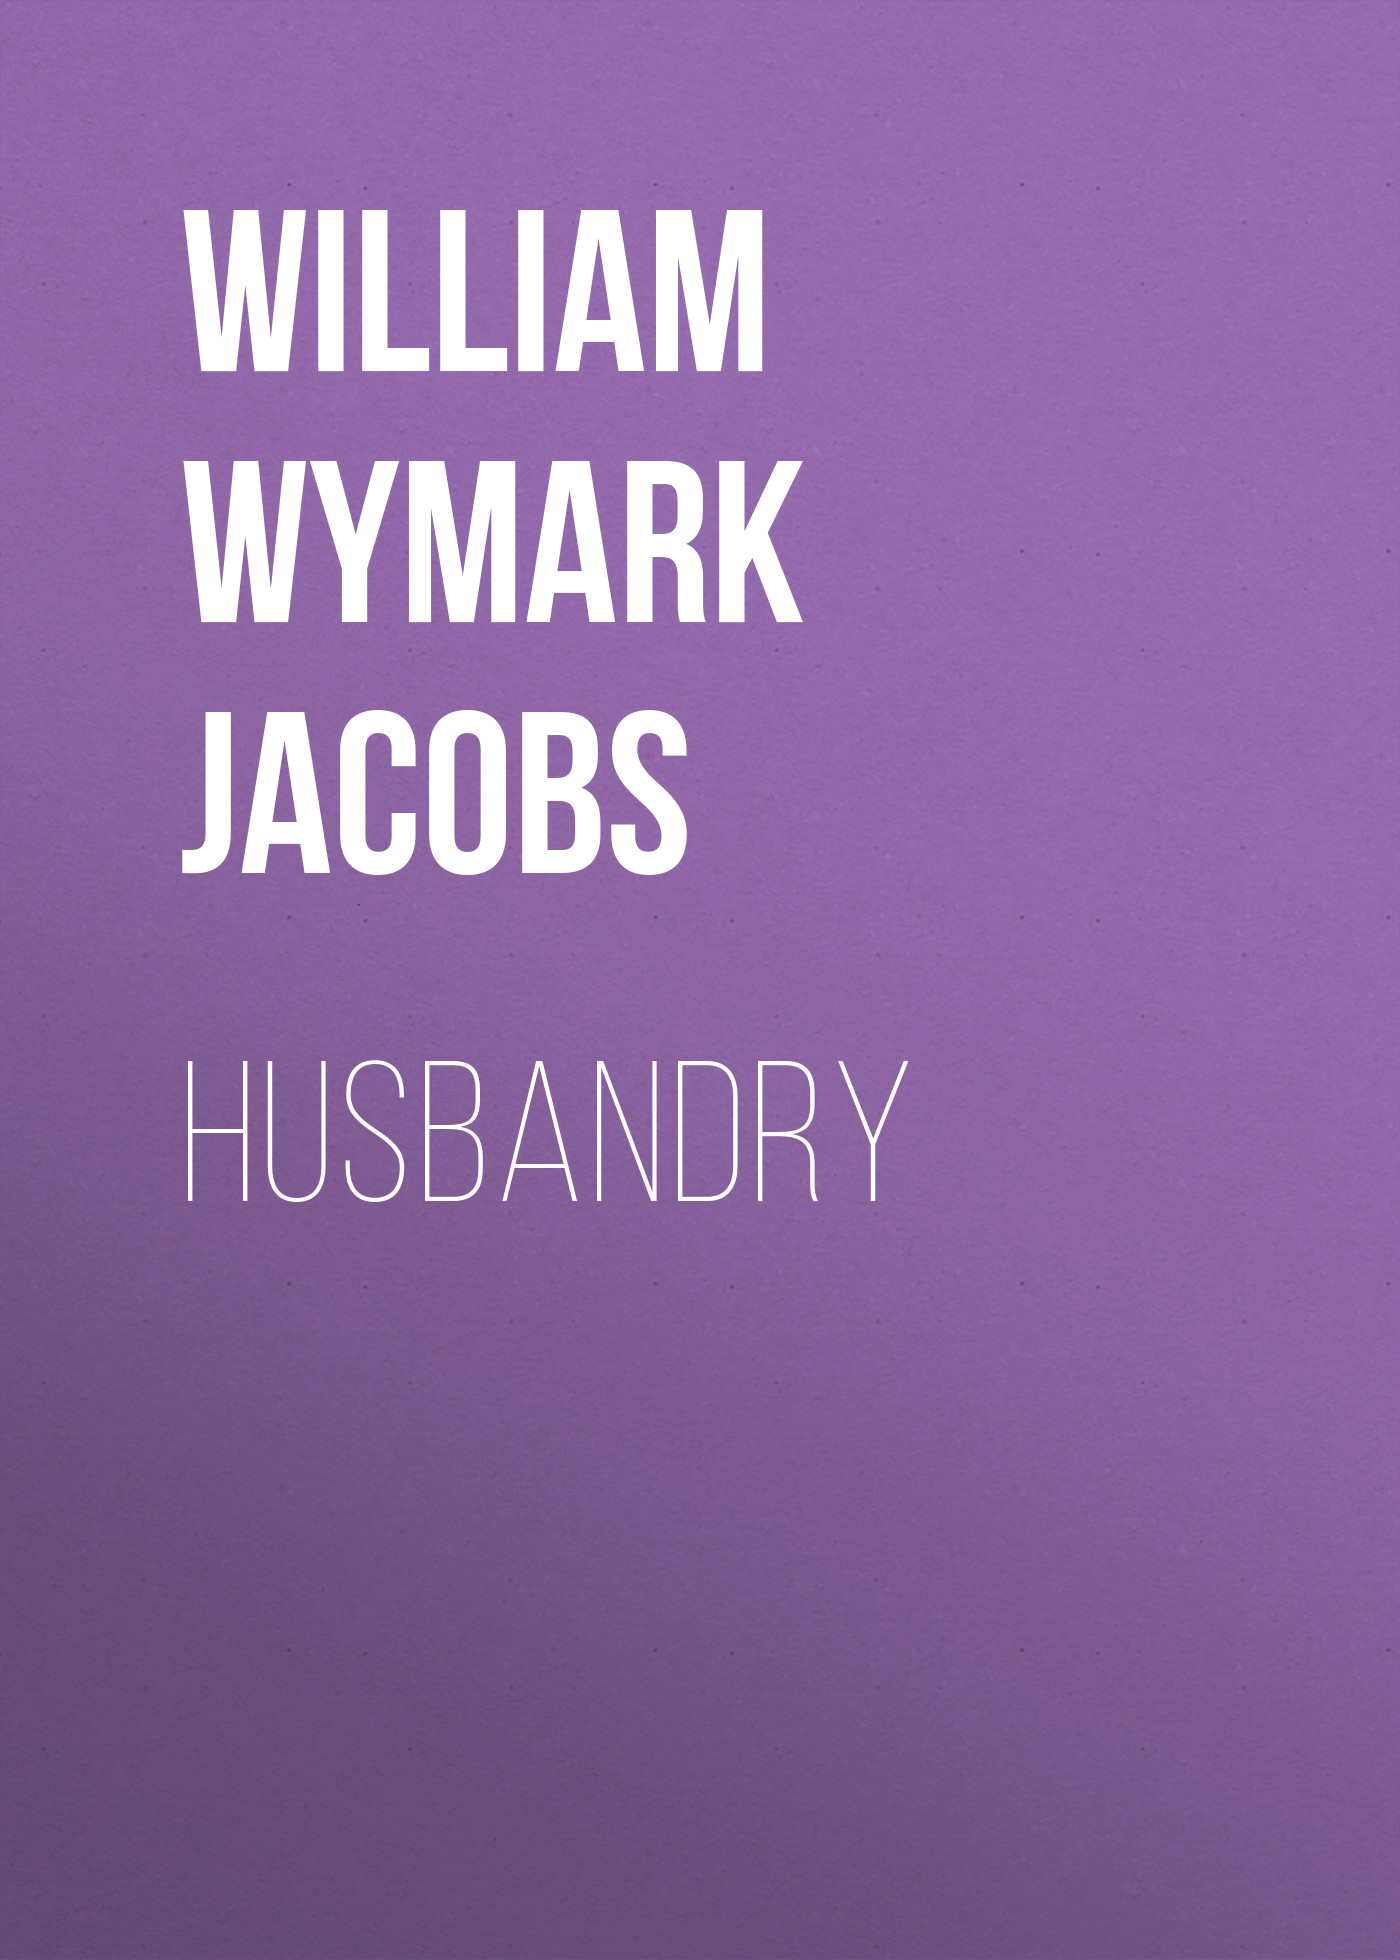 William Wymark Jacobs Husbandry